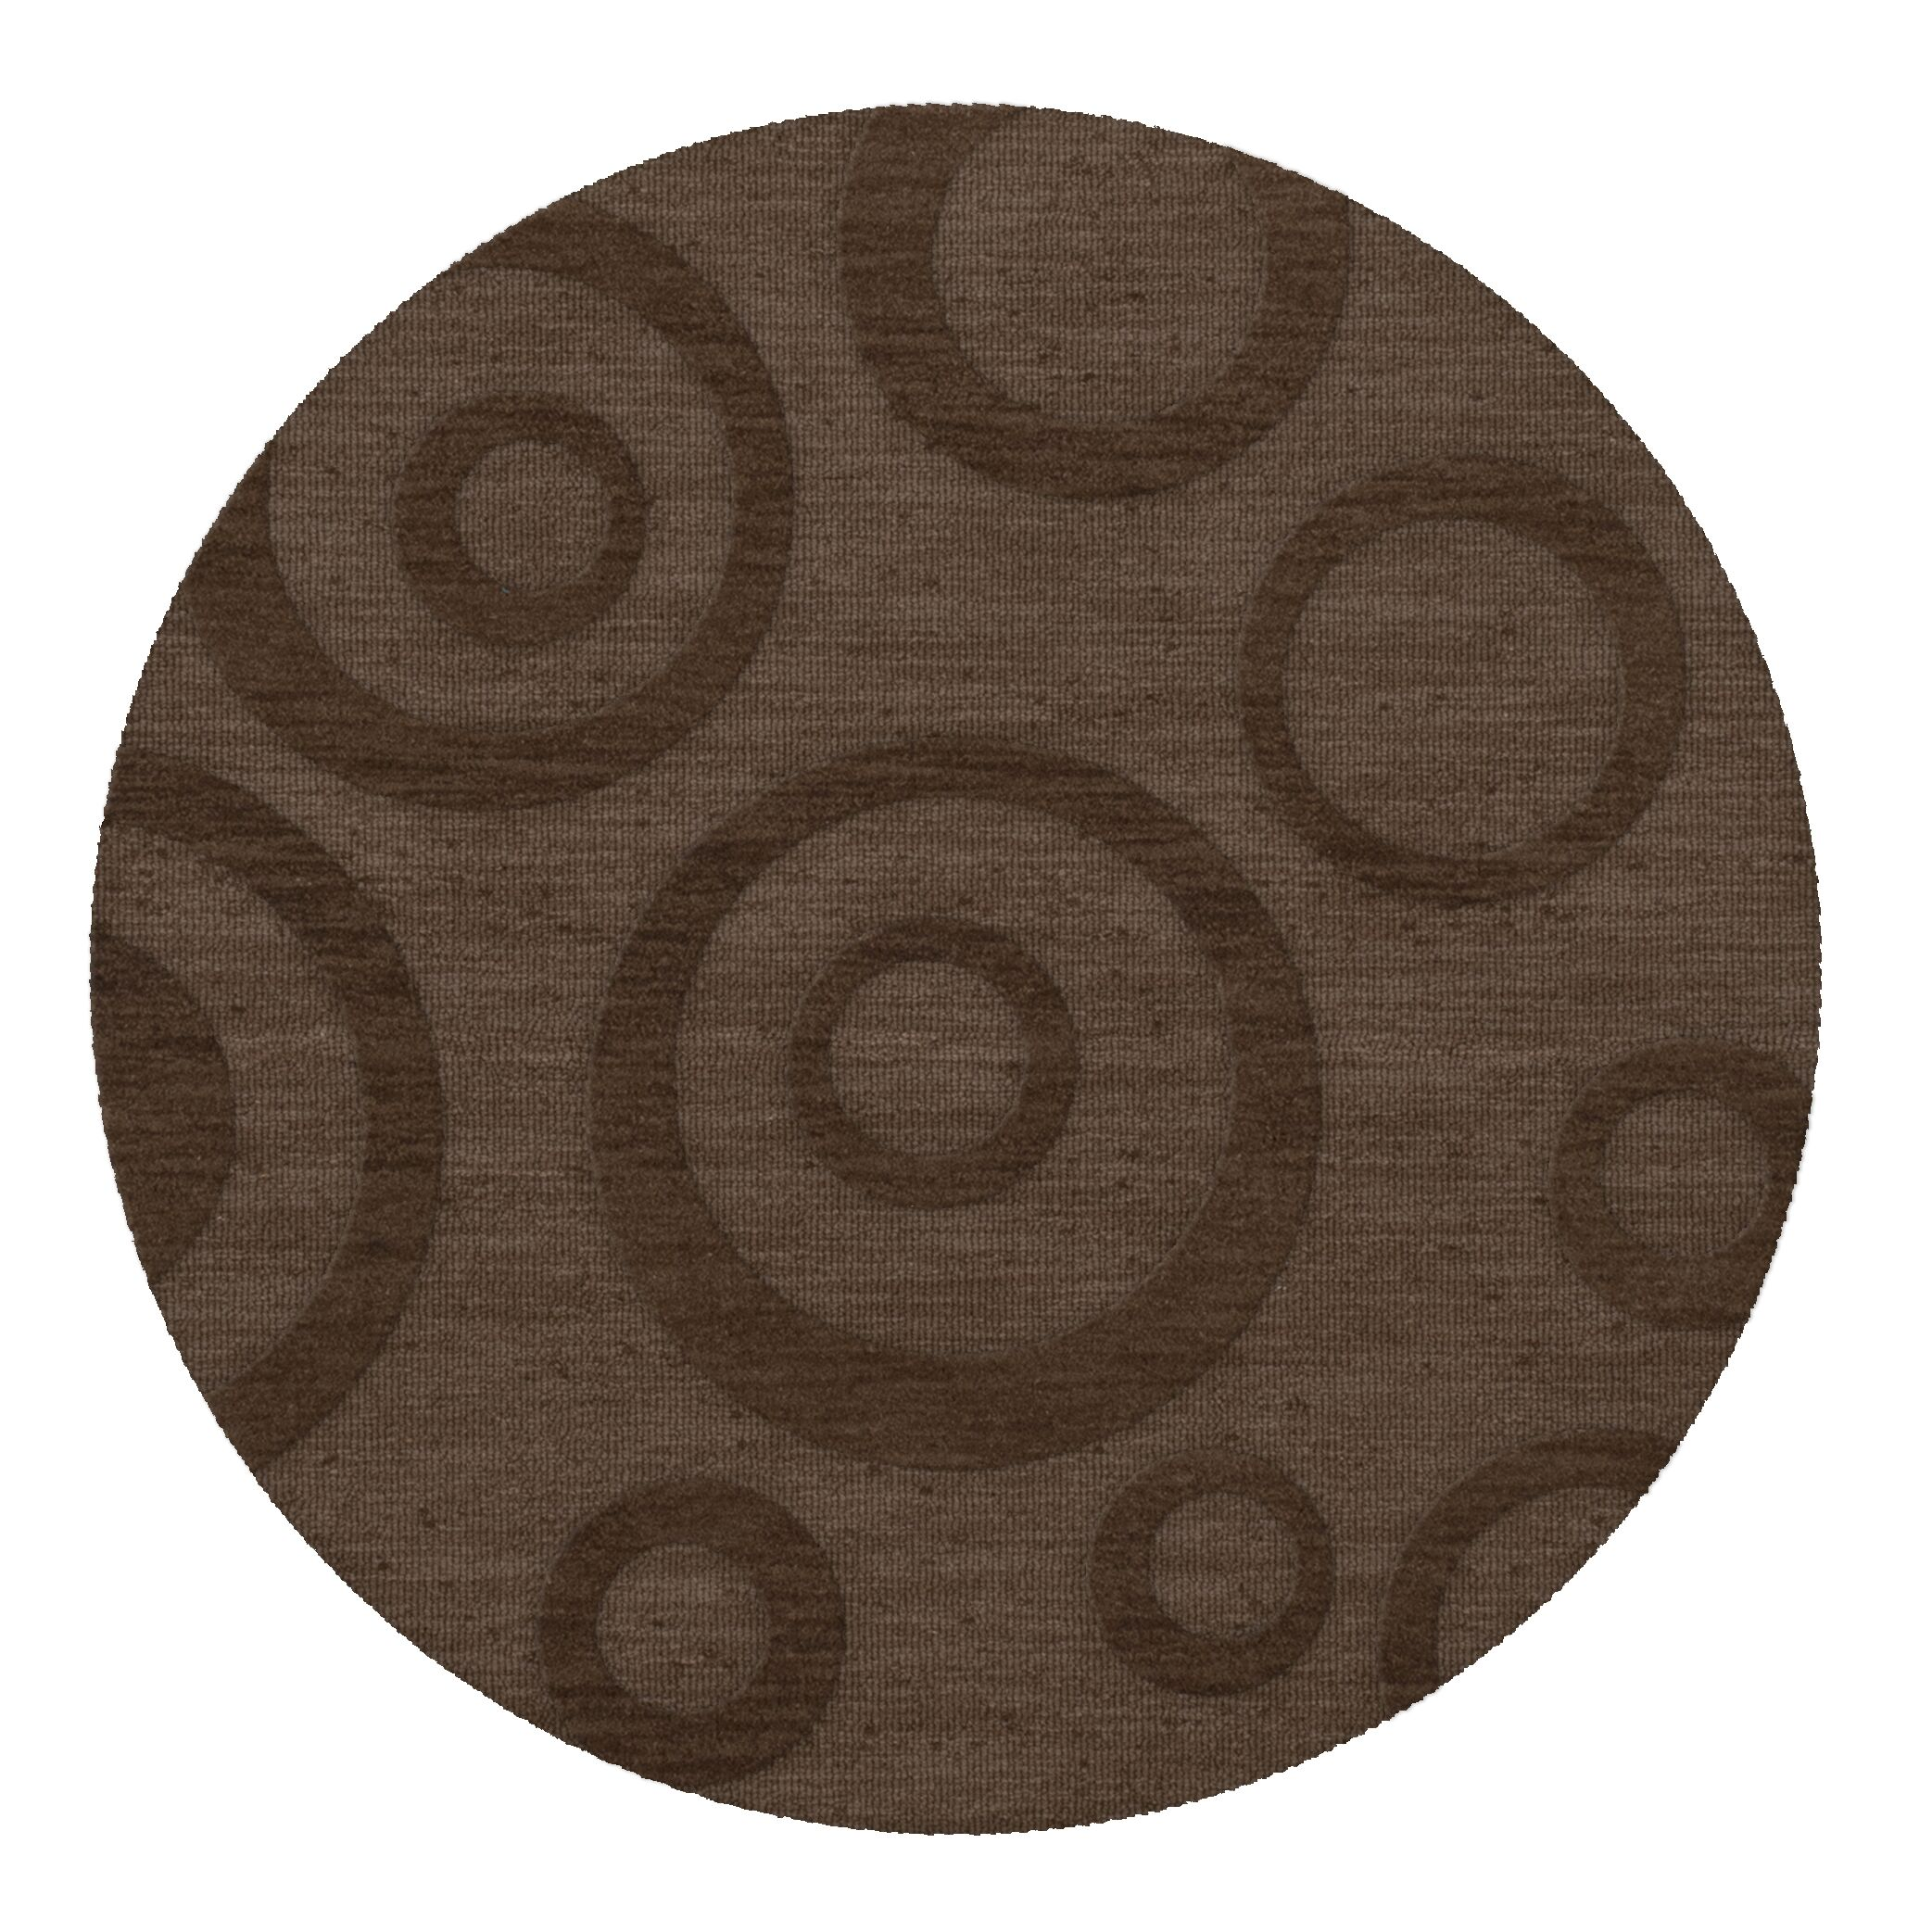 Dover Tufted Wool Mocha Area Rug Rug Size: Round 12'